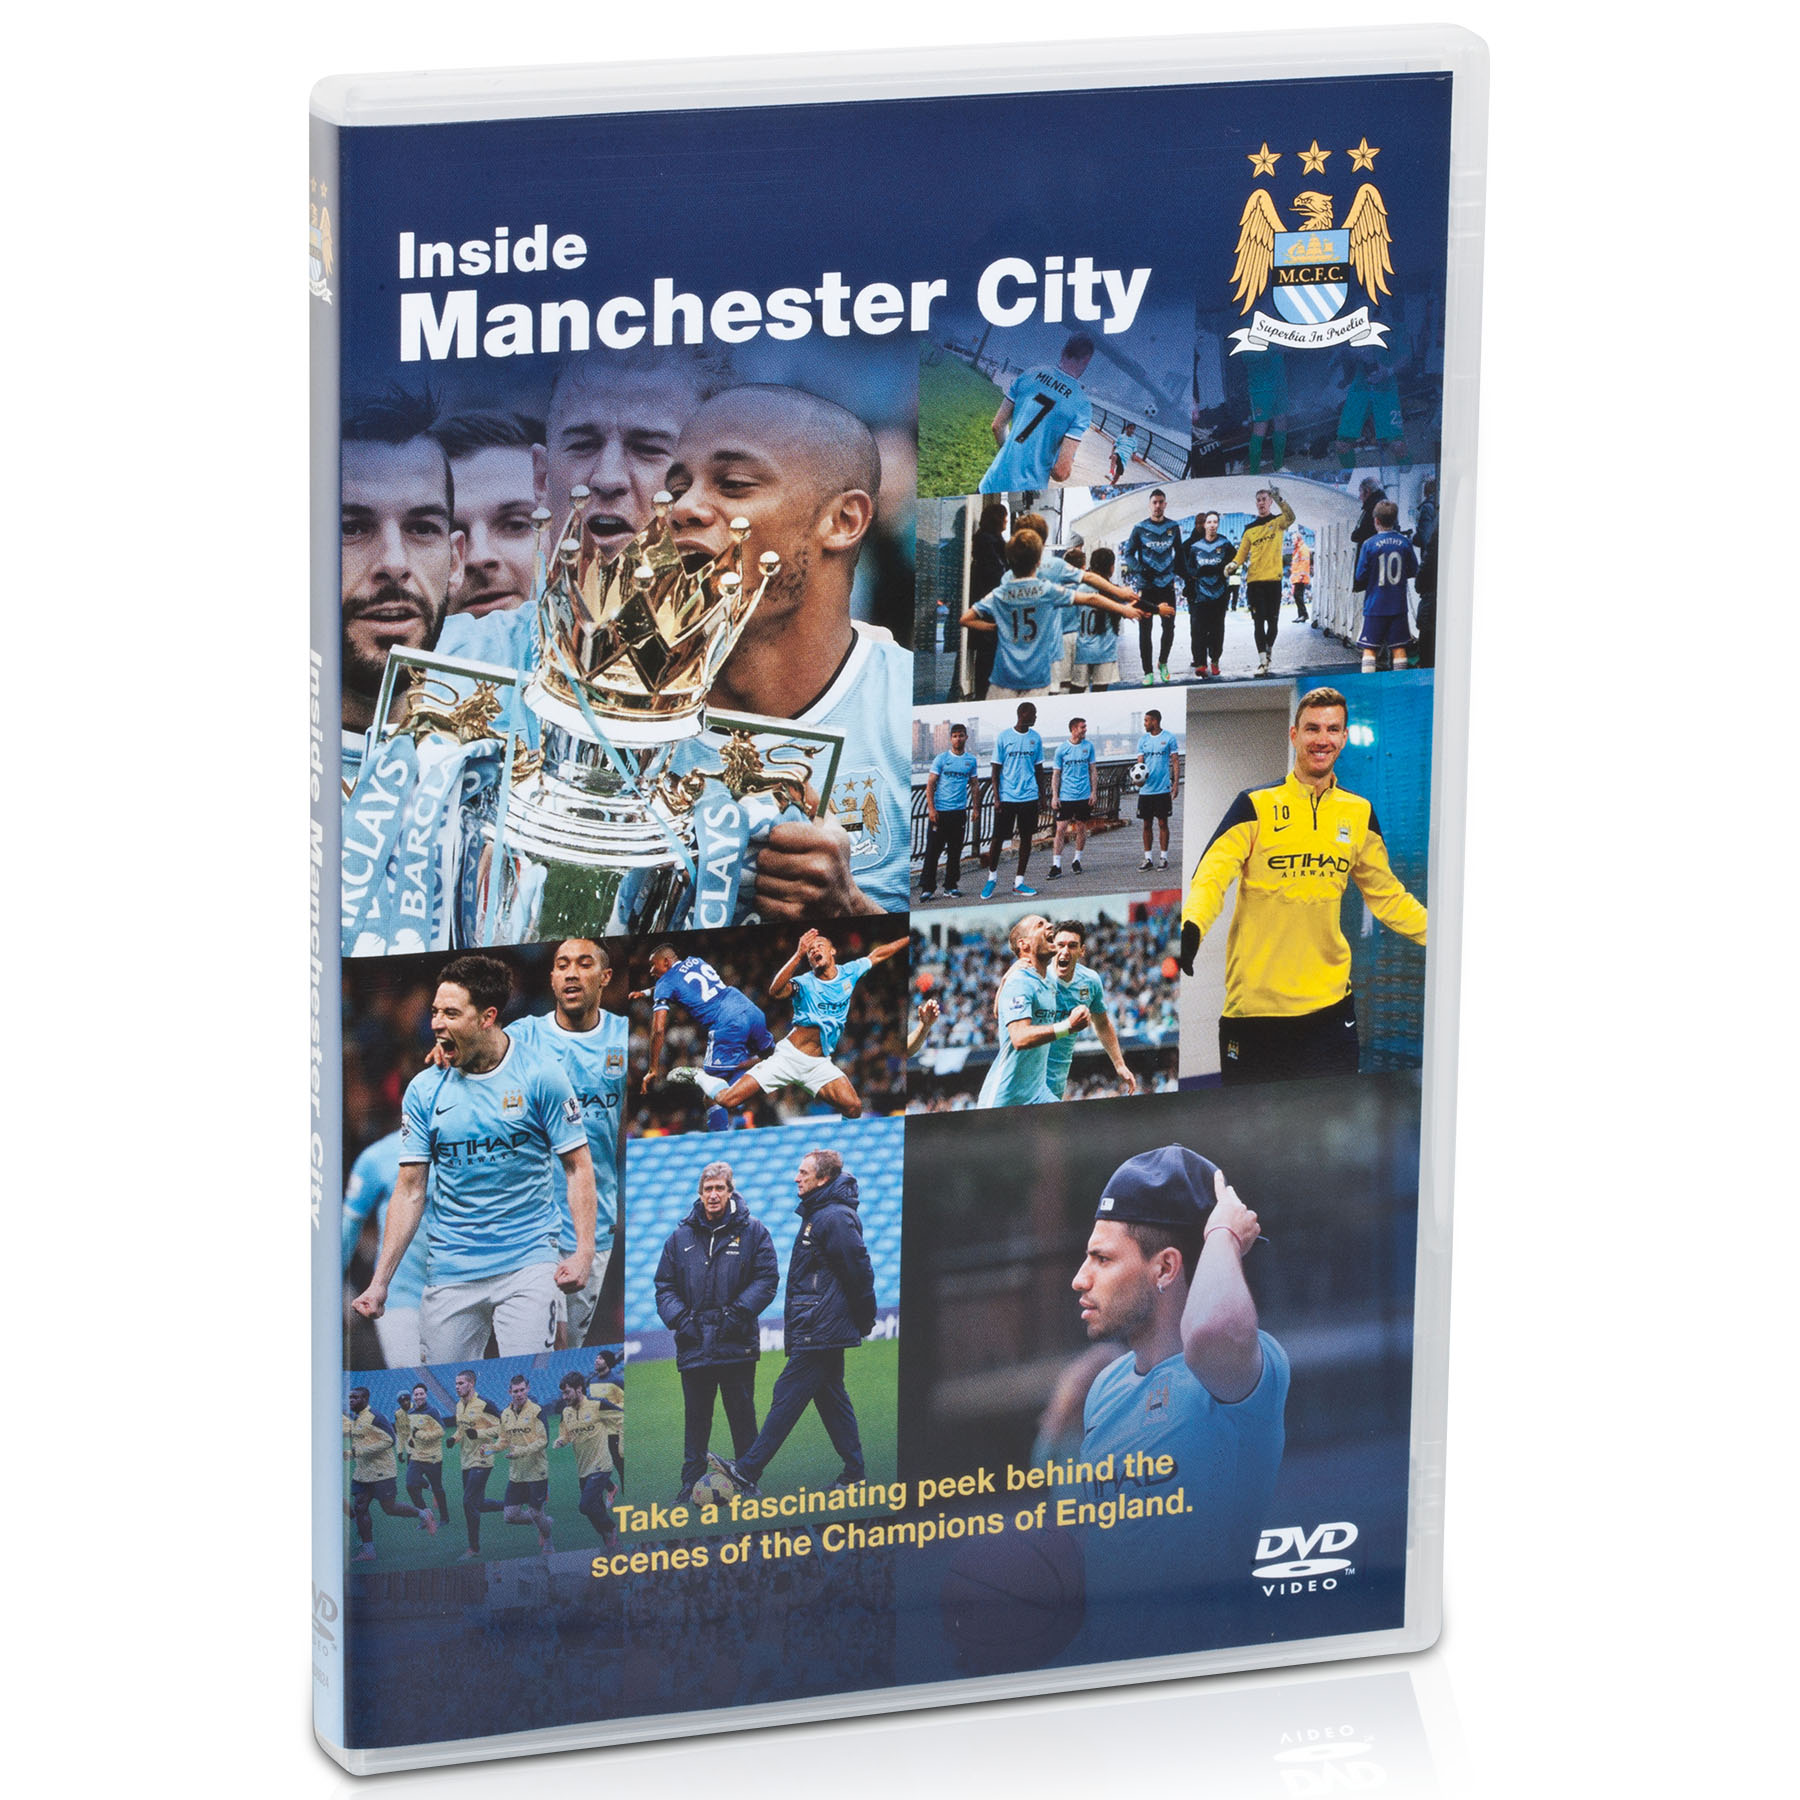 Inside Manchester City || Click Here for the DVD on Inside City